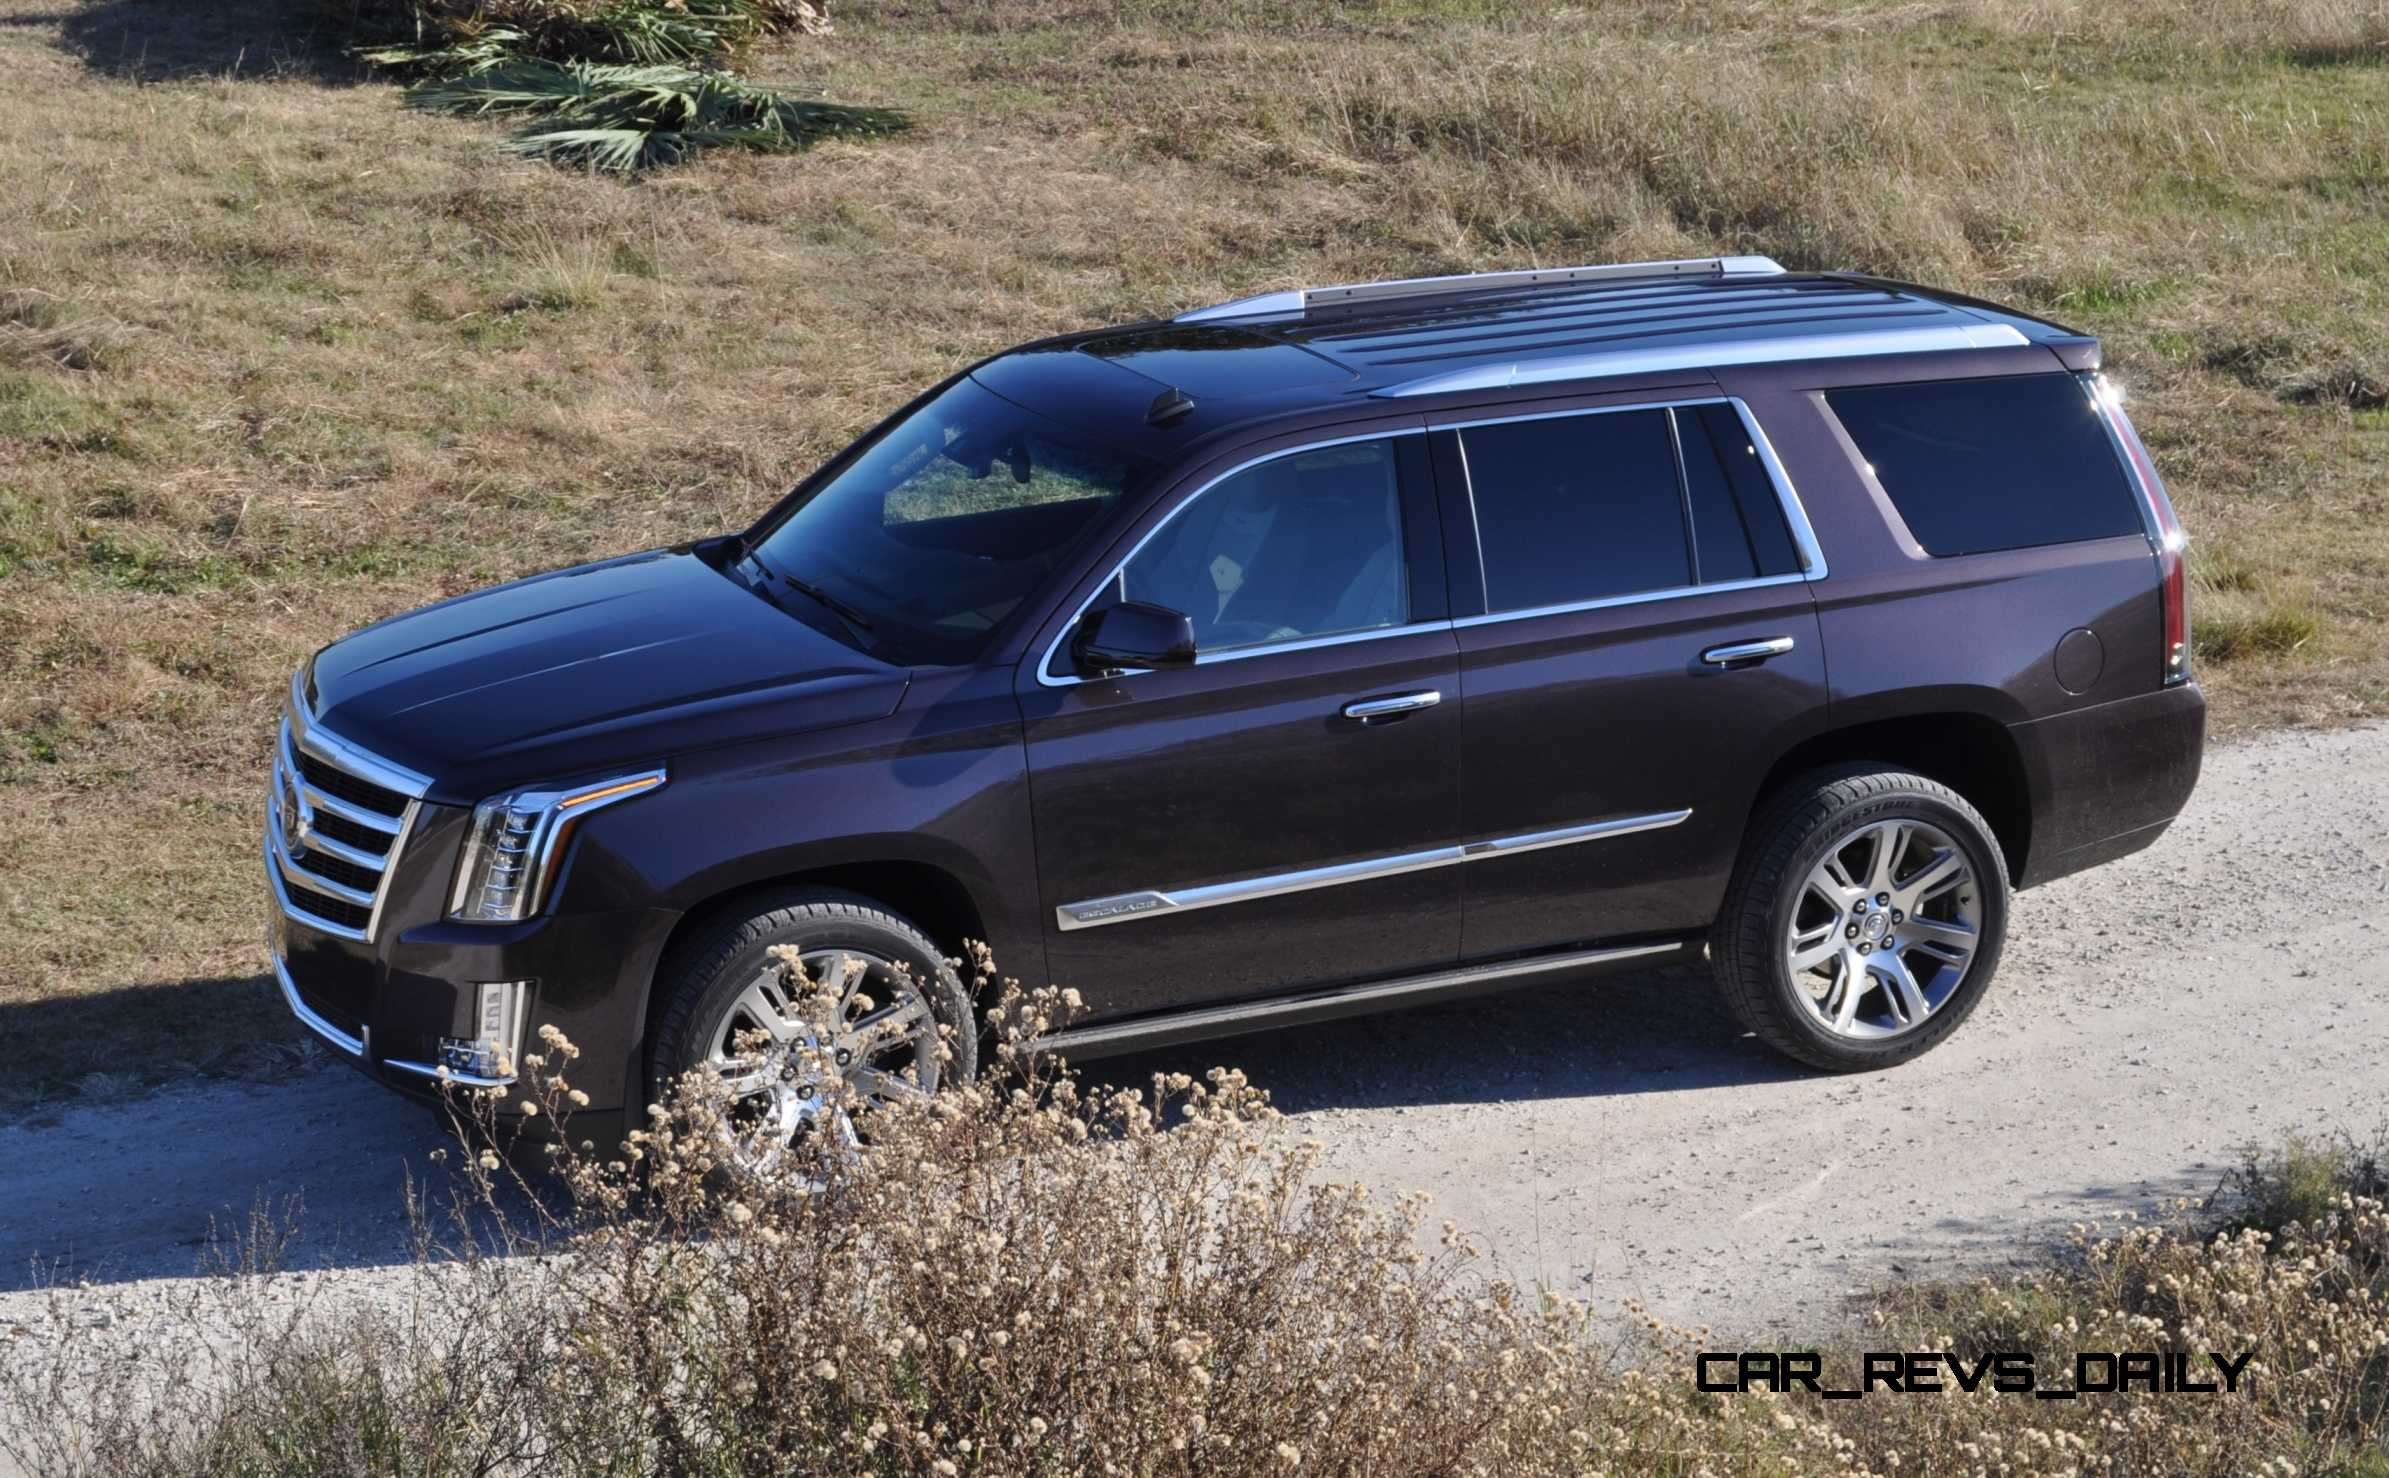 2015 escalade info specs price pictures wiki gm html autos post. Black Bedroom Furniture Sets. Home Design Ideas